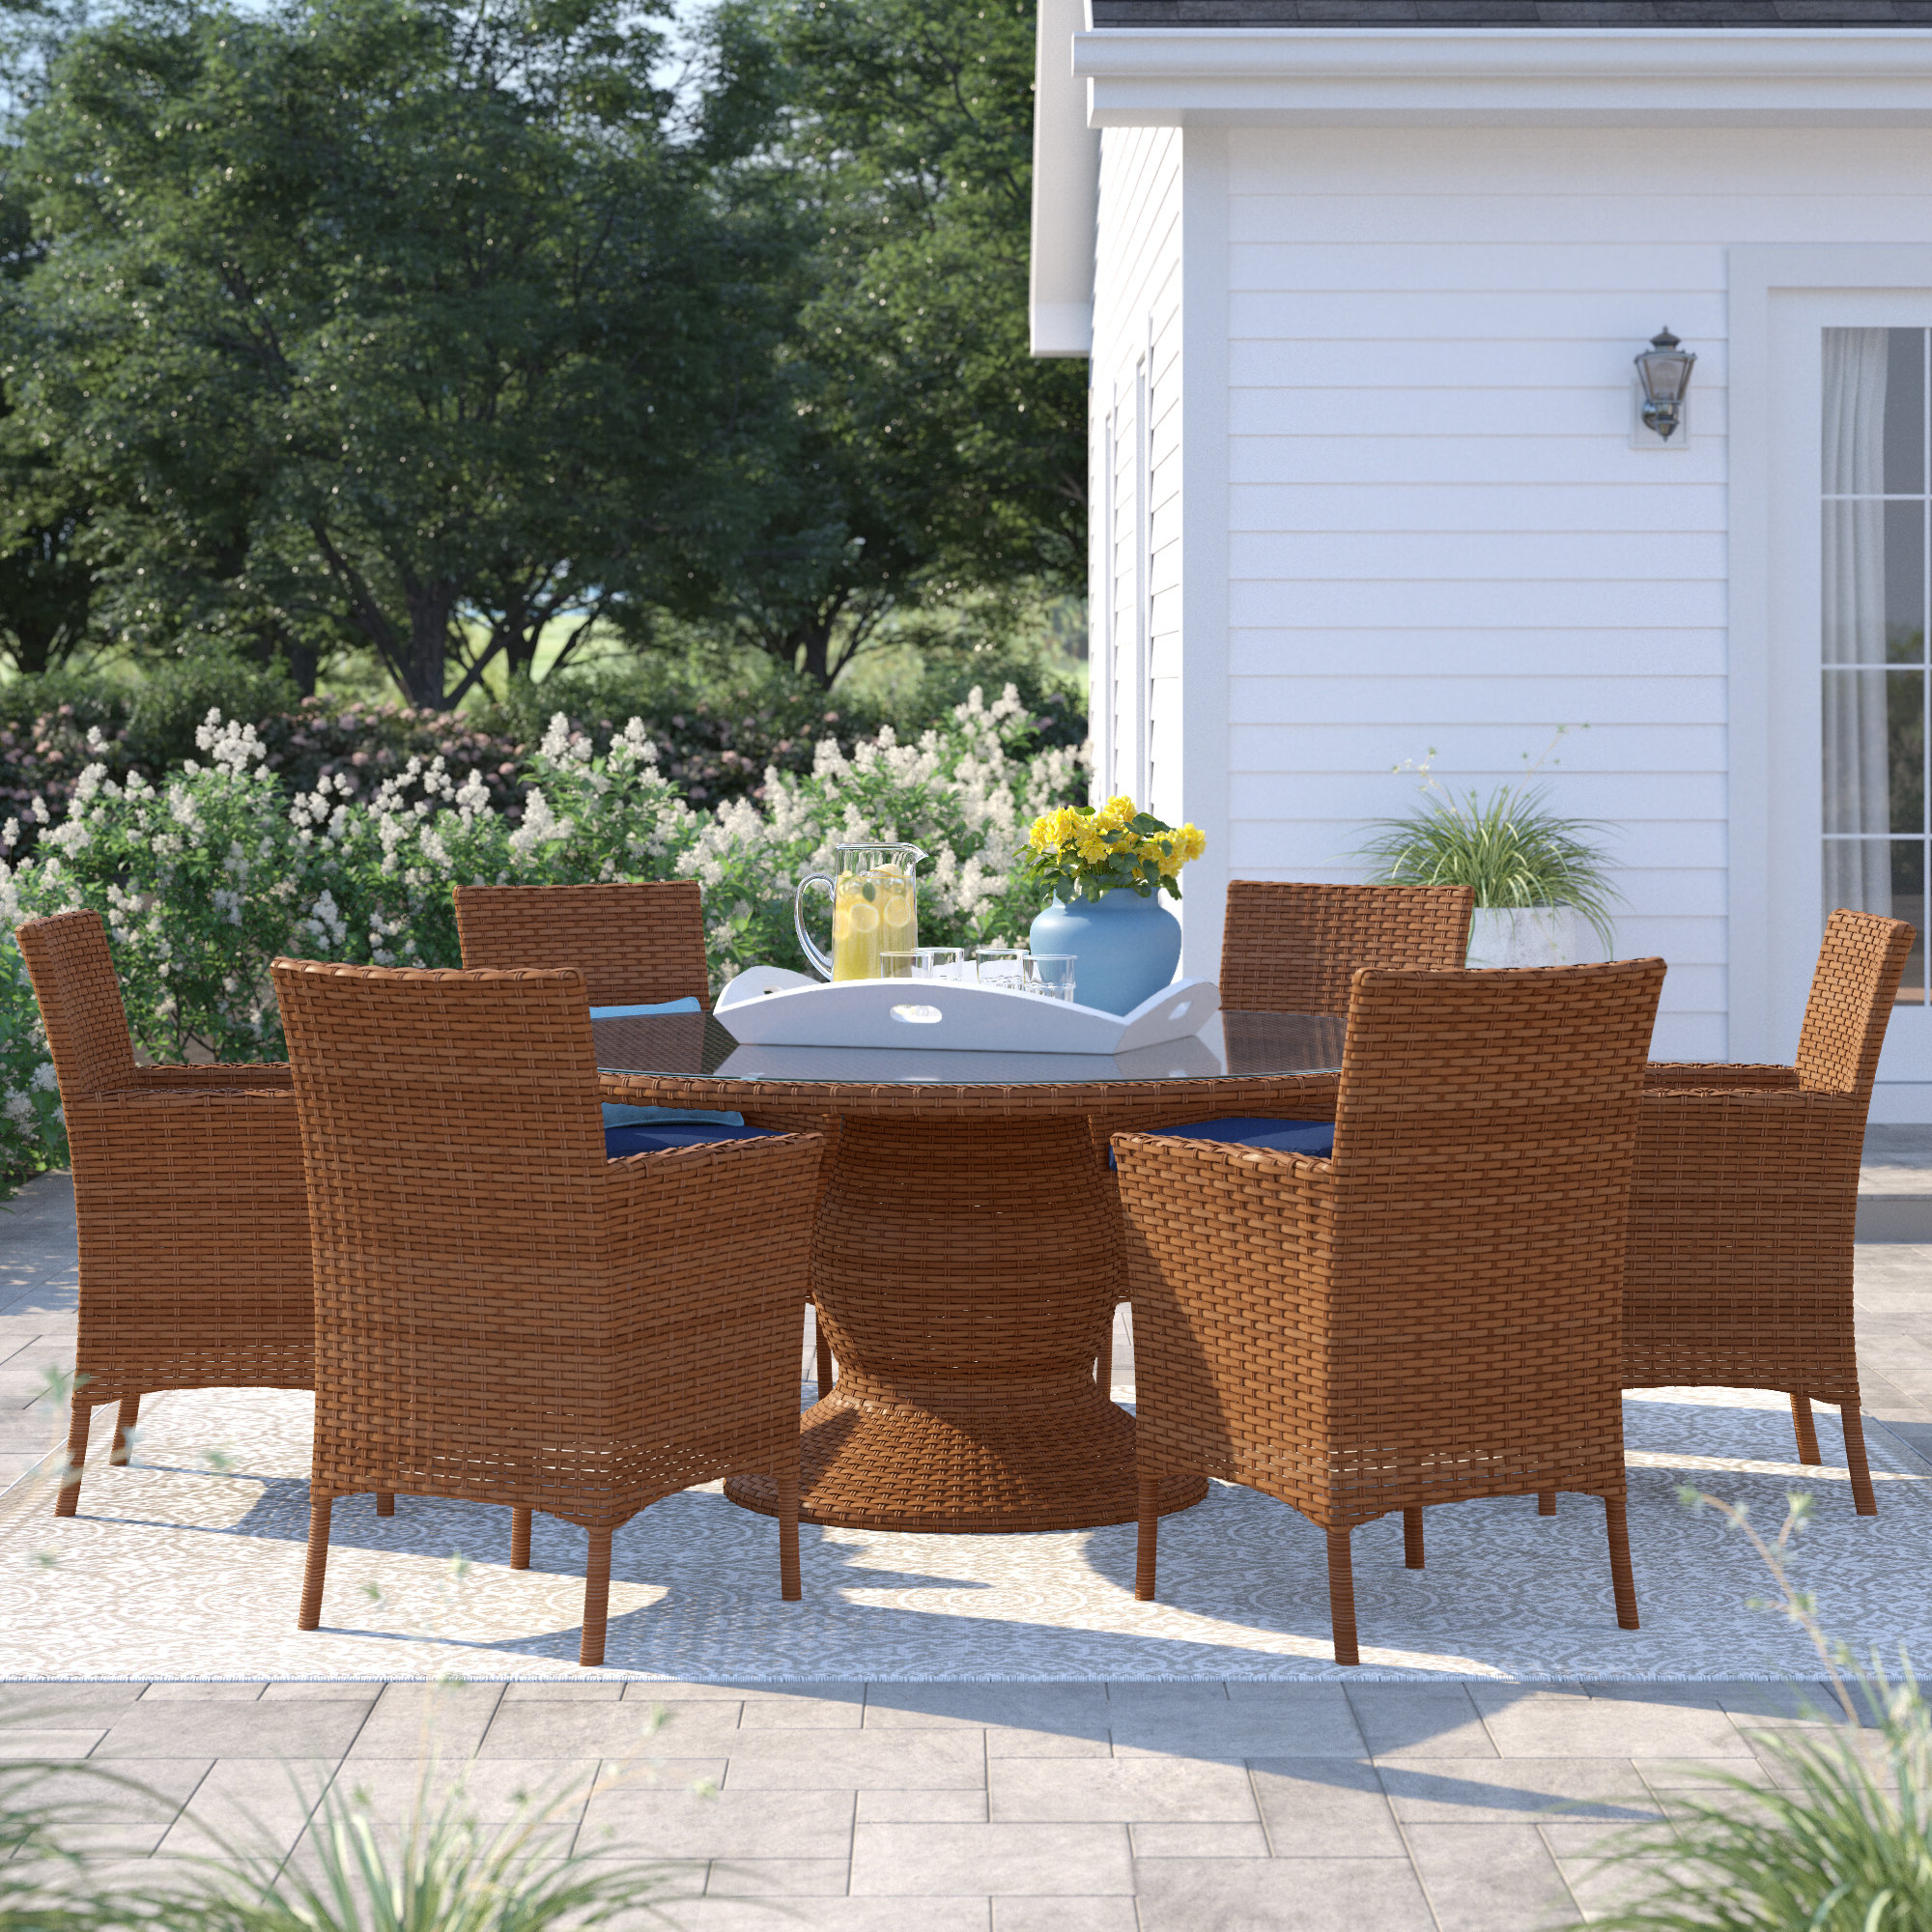 Waterbury Patio 7 Piece Dining Set With Cushions Within Most Popular Waterbury Patio Sectionals With Cushions (Gallery 16 of 25)